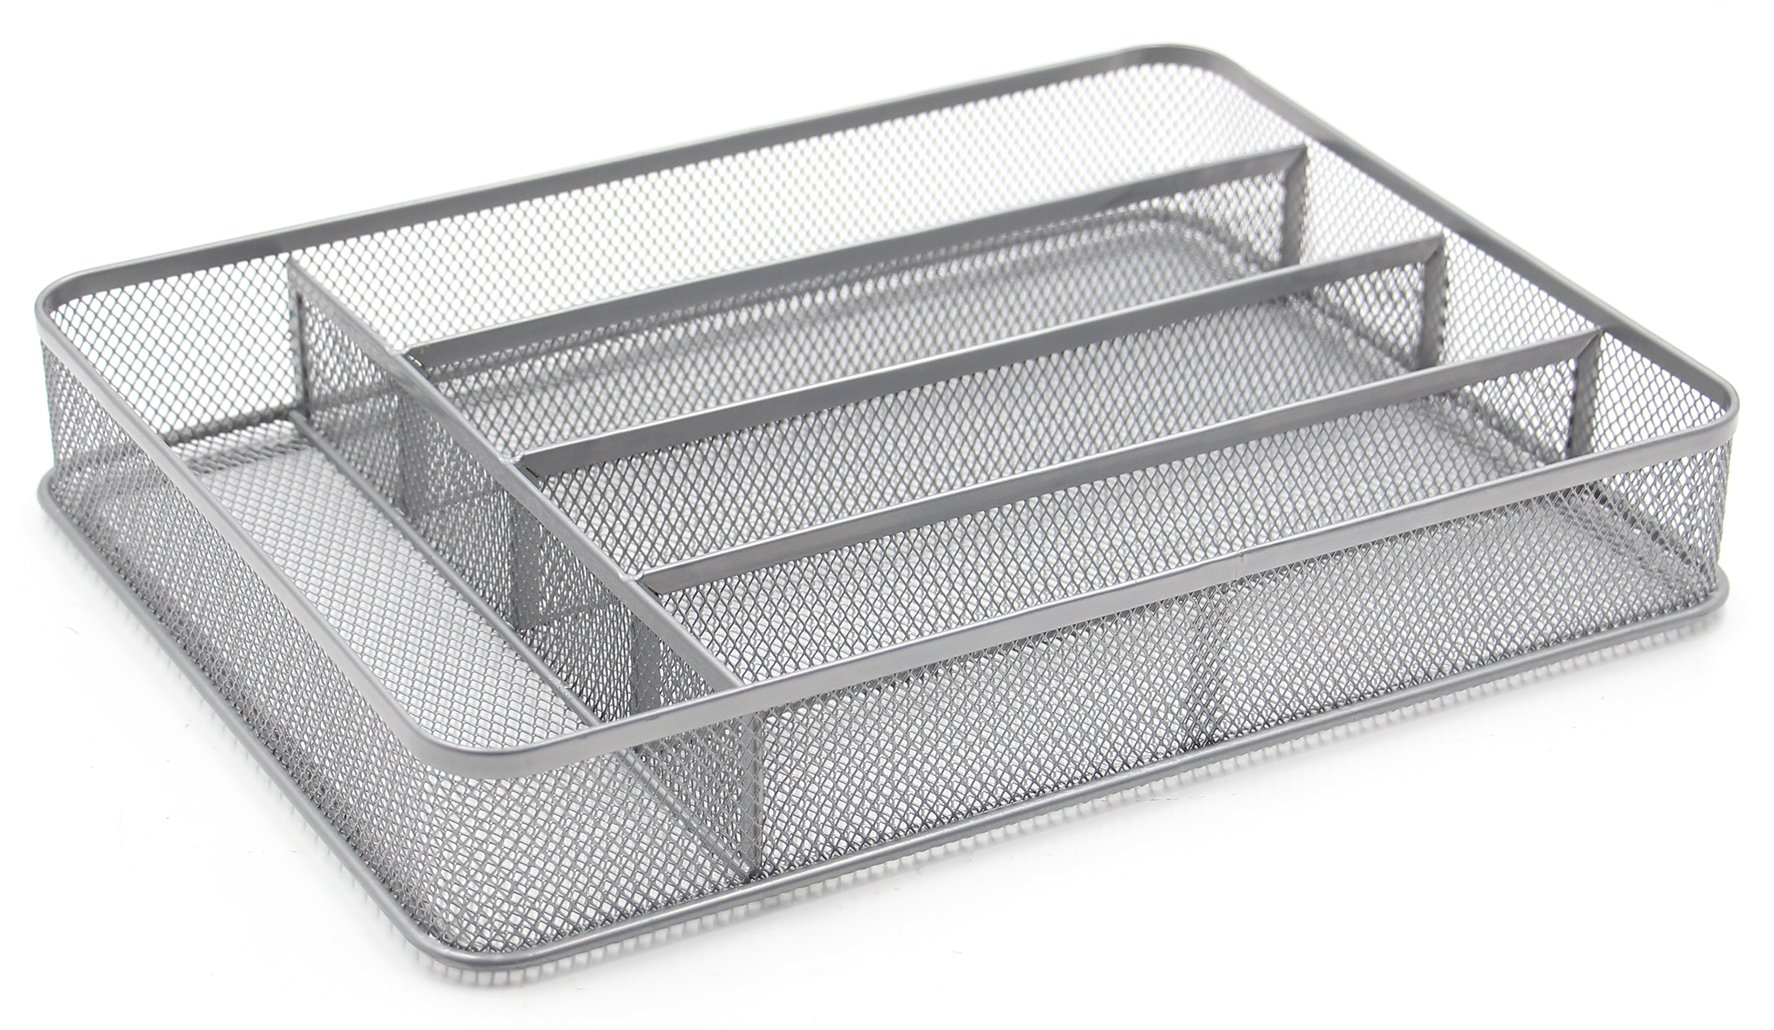 ESYLIFE 5 Compartment Mesh Kitchen Cutlery Trays Silverware Storage Kitchen Utensil Flatware Tray, Silver by Esy-Life (Image #4)